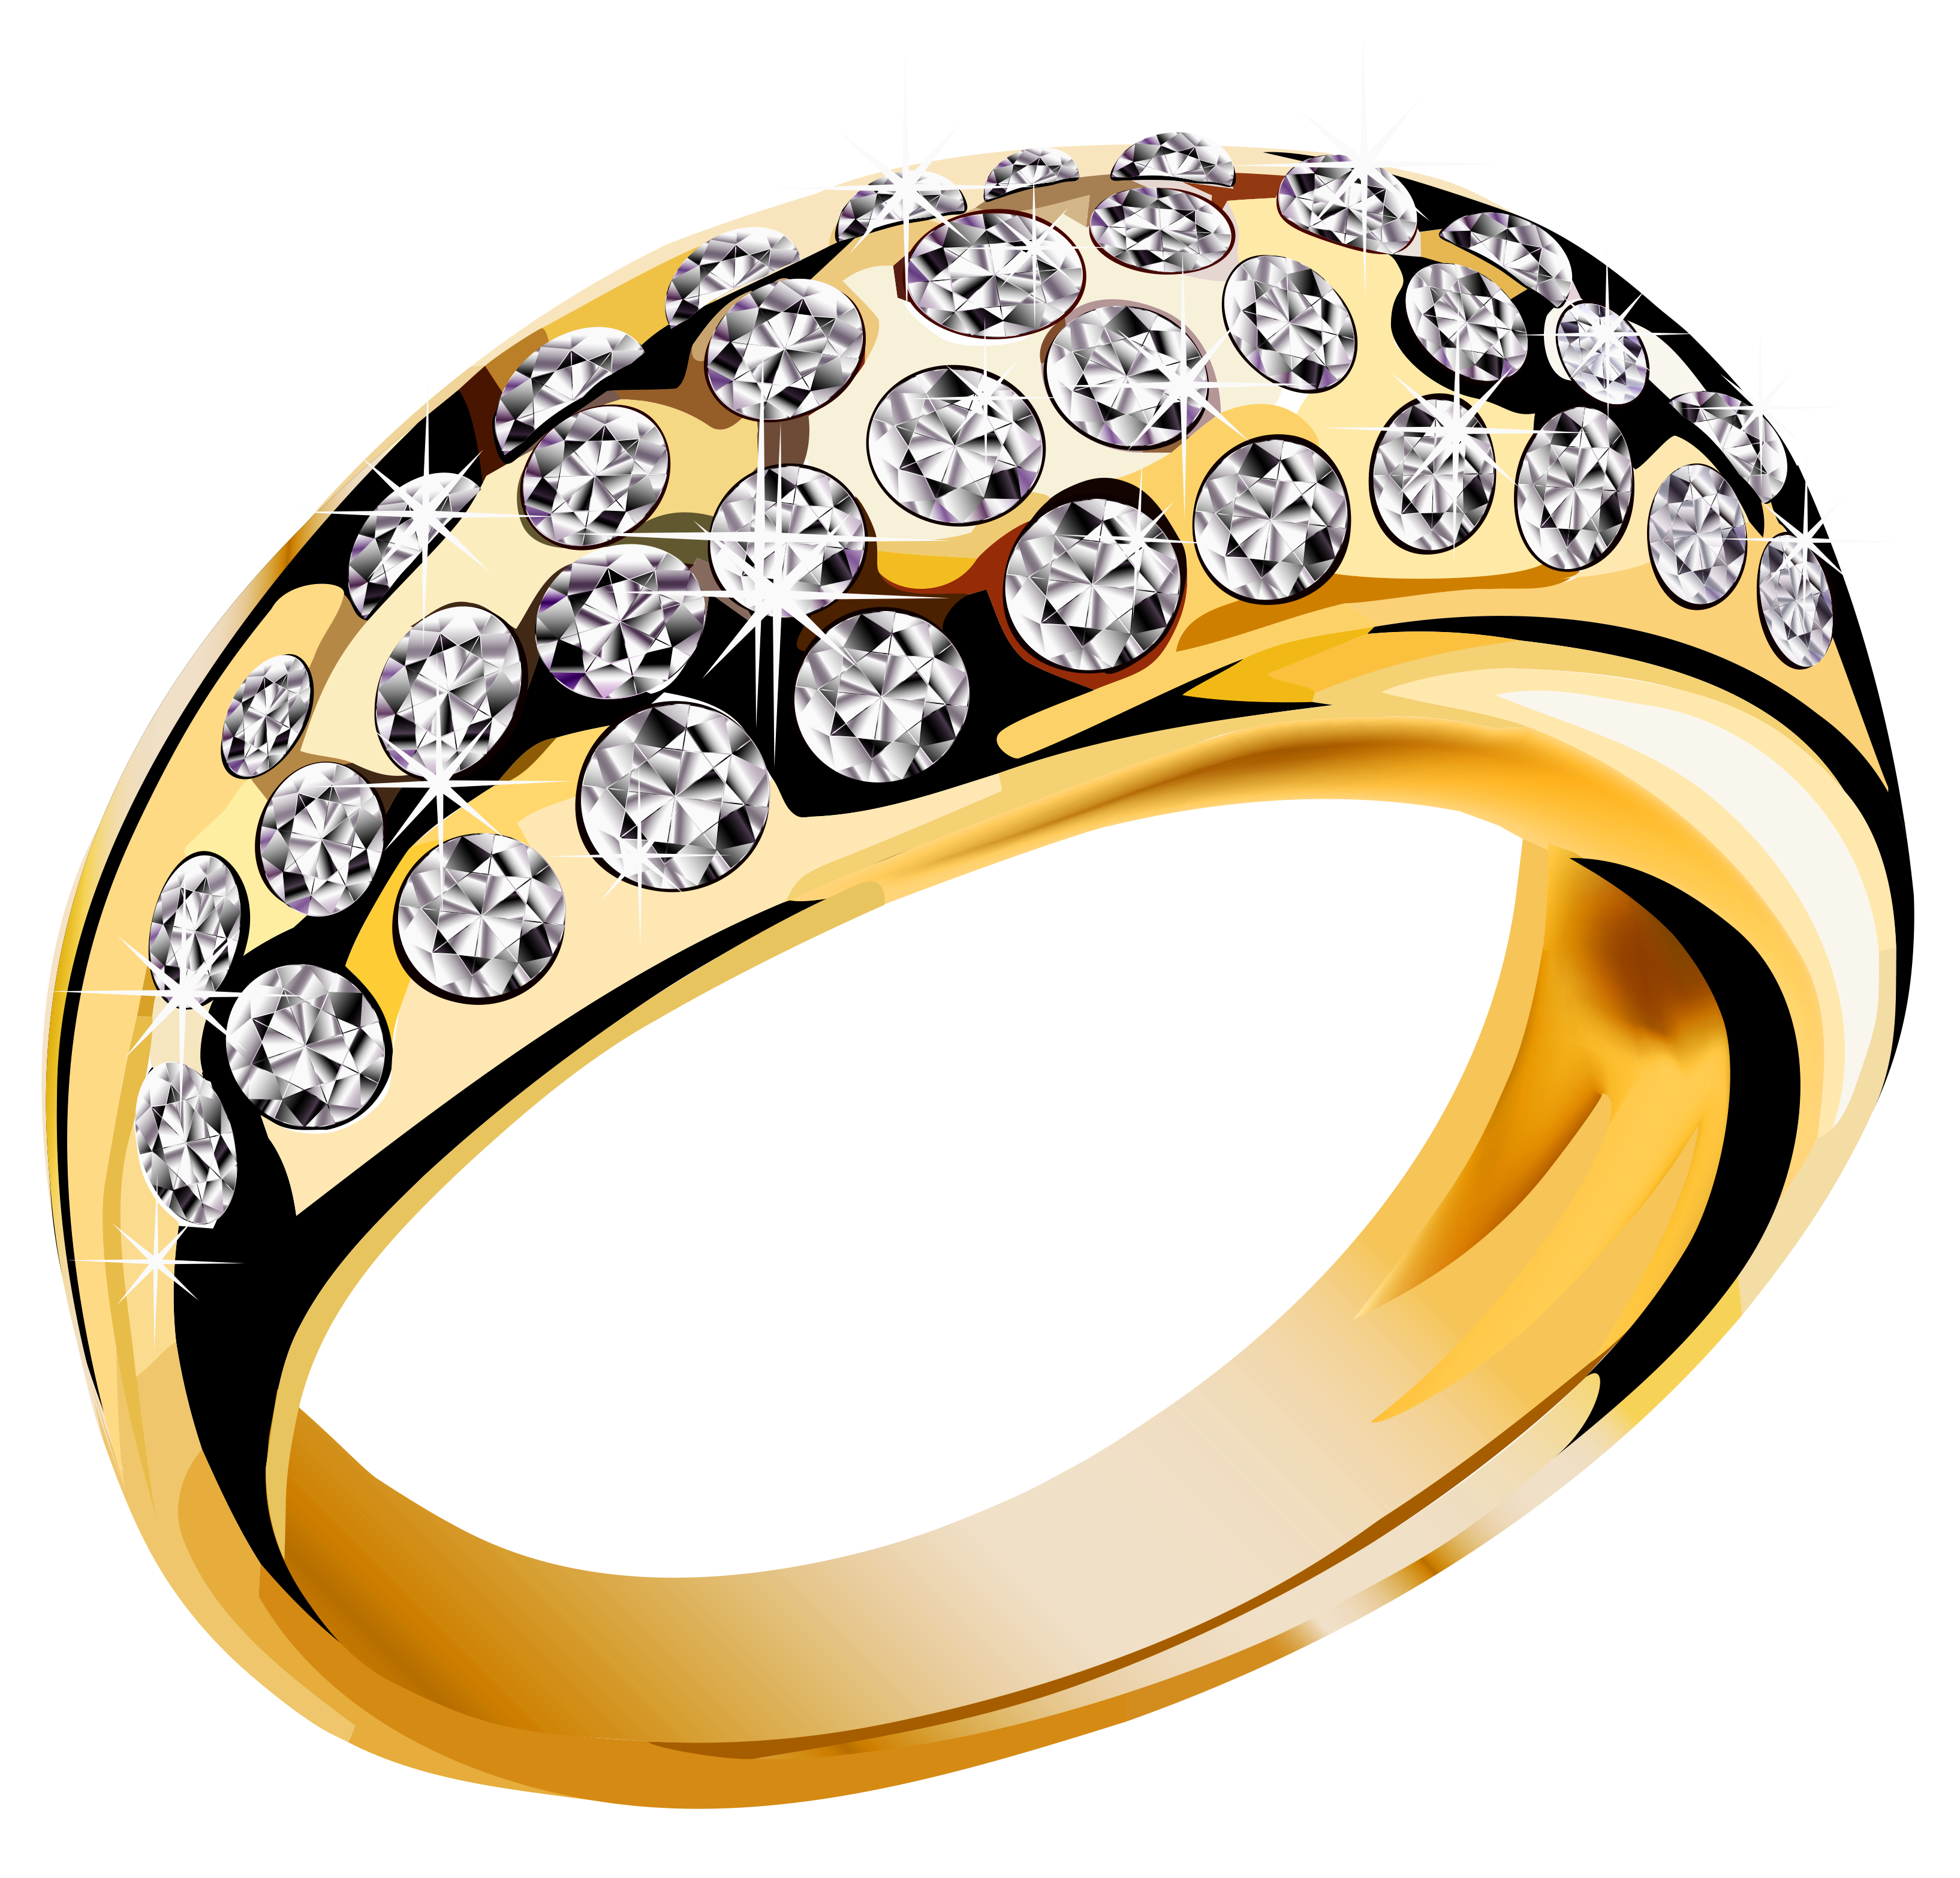 3269x3132 Gold Ring With White Diamonds Png Clipartu200b Gallery Yopriceville